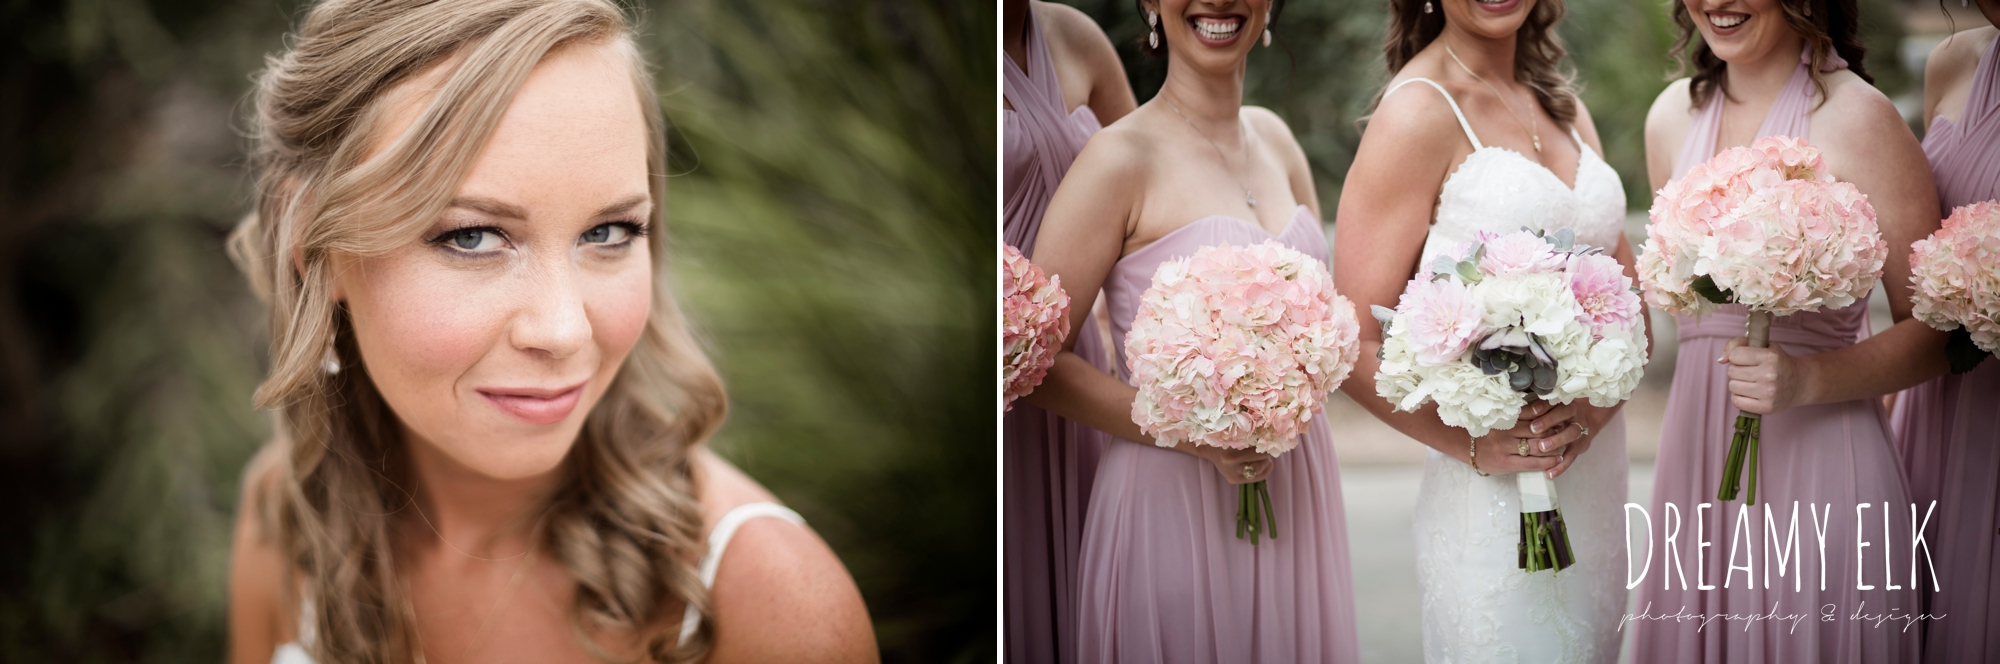 madame makeup and hair, bride and bridesmaids, mix and matched floor length blush bridesmaid dresses, heb blooms, cloudy march wedding photo, canyon springs golf club wedding, san antonio, texas {dreamy elk photography and design}